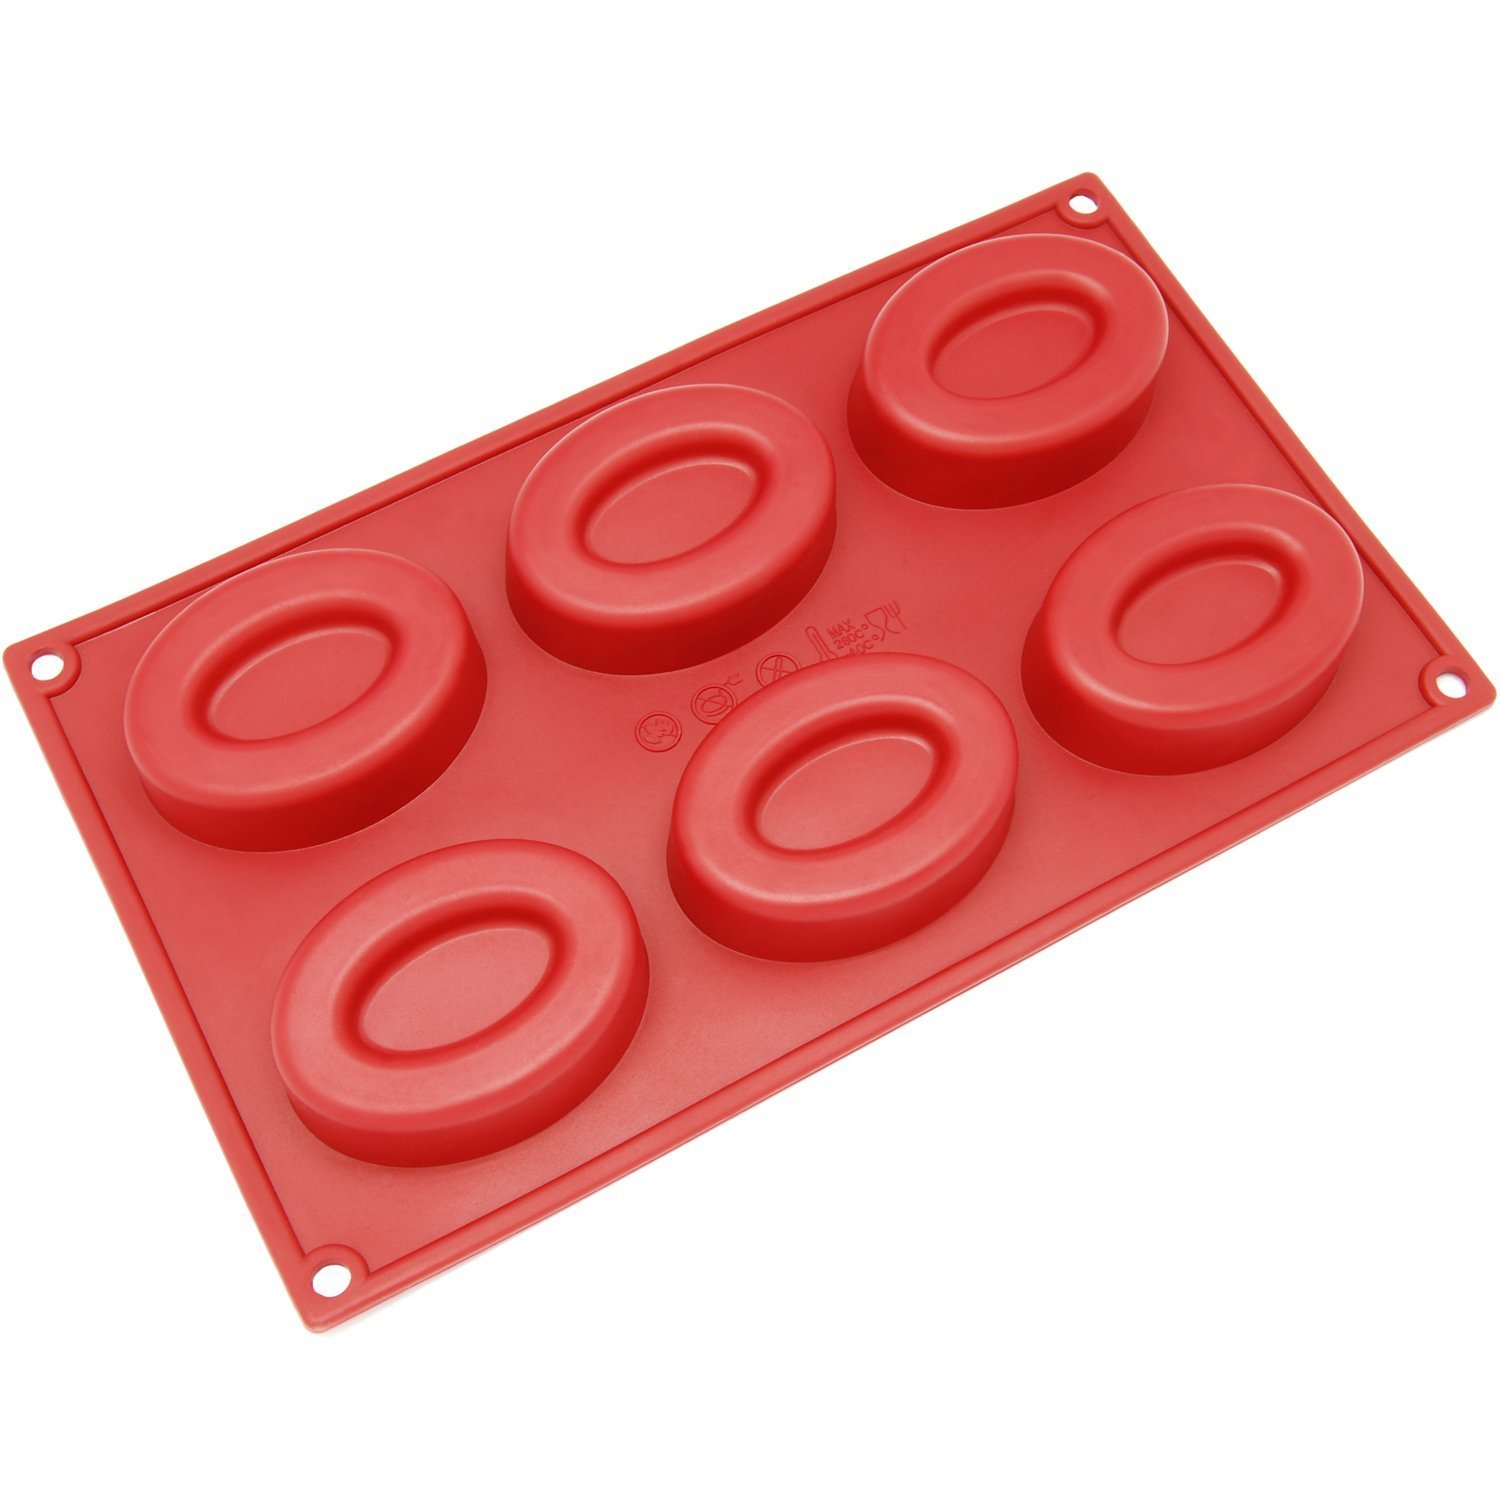 Generic SL-133RD 8-Cavity Square Silicone Mold for Bread, Loaf, Muffin, Brownie by Generic